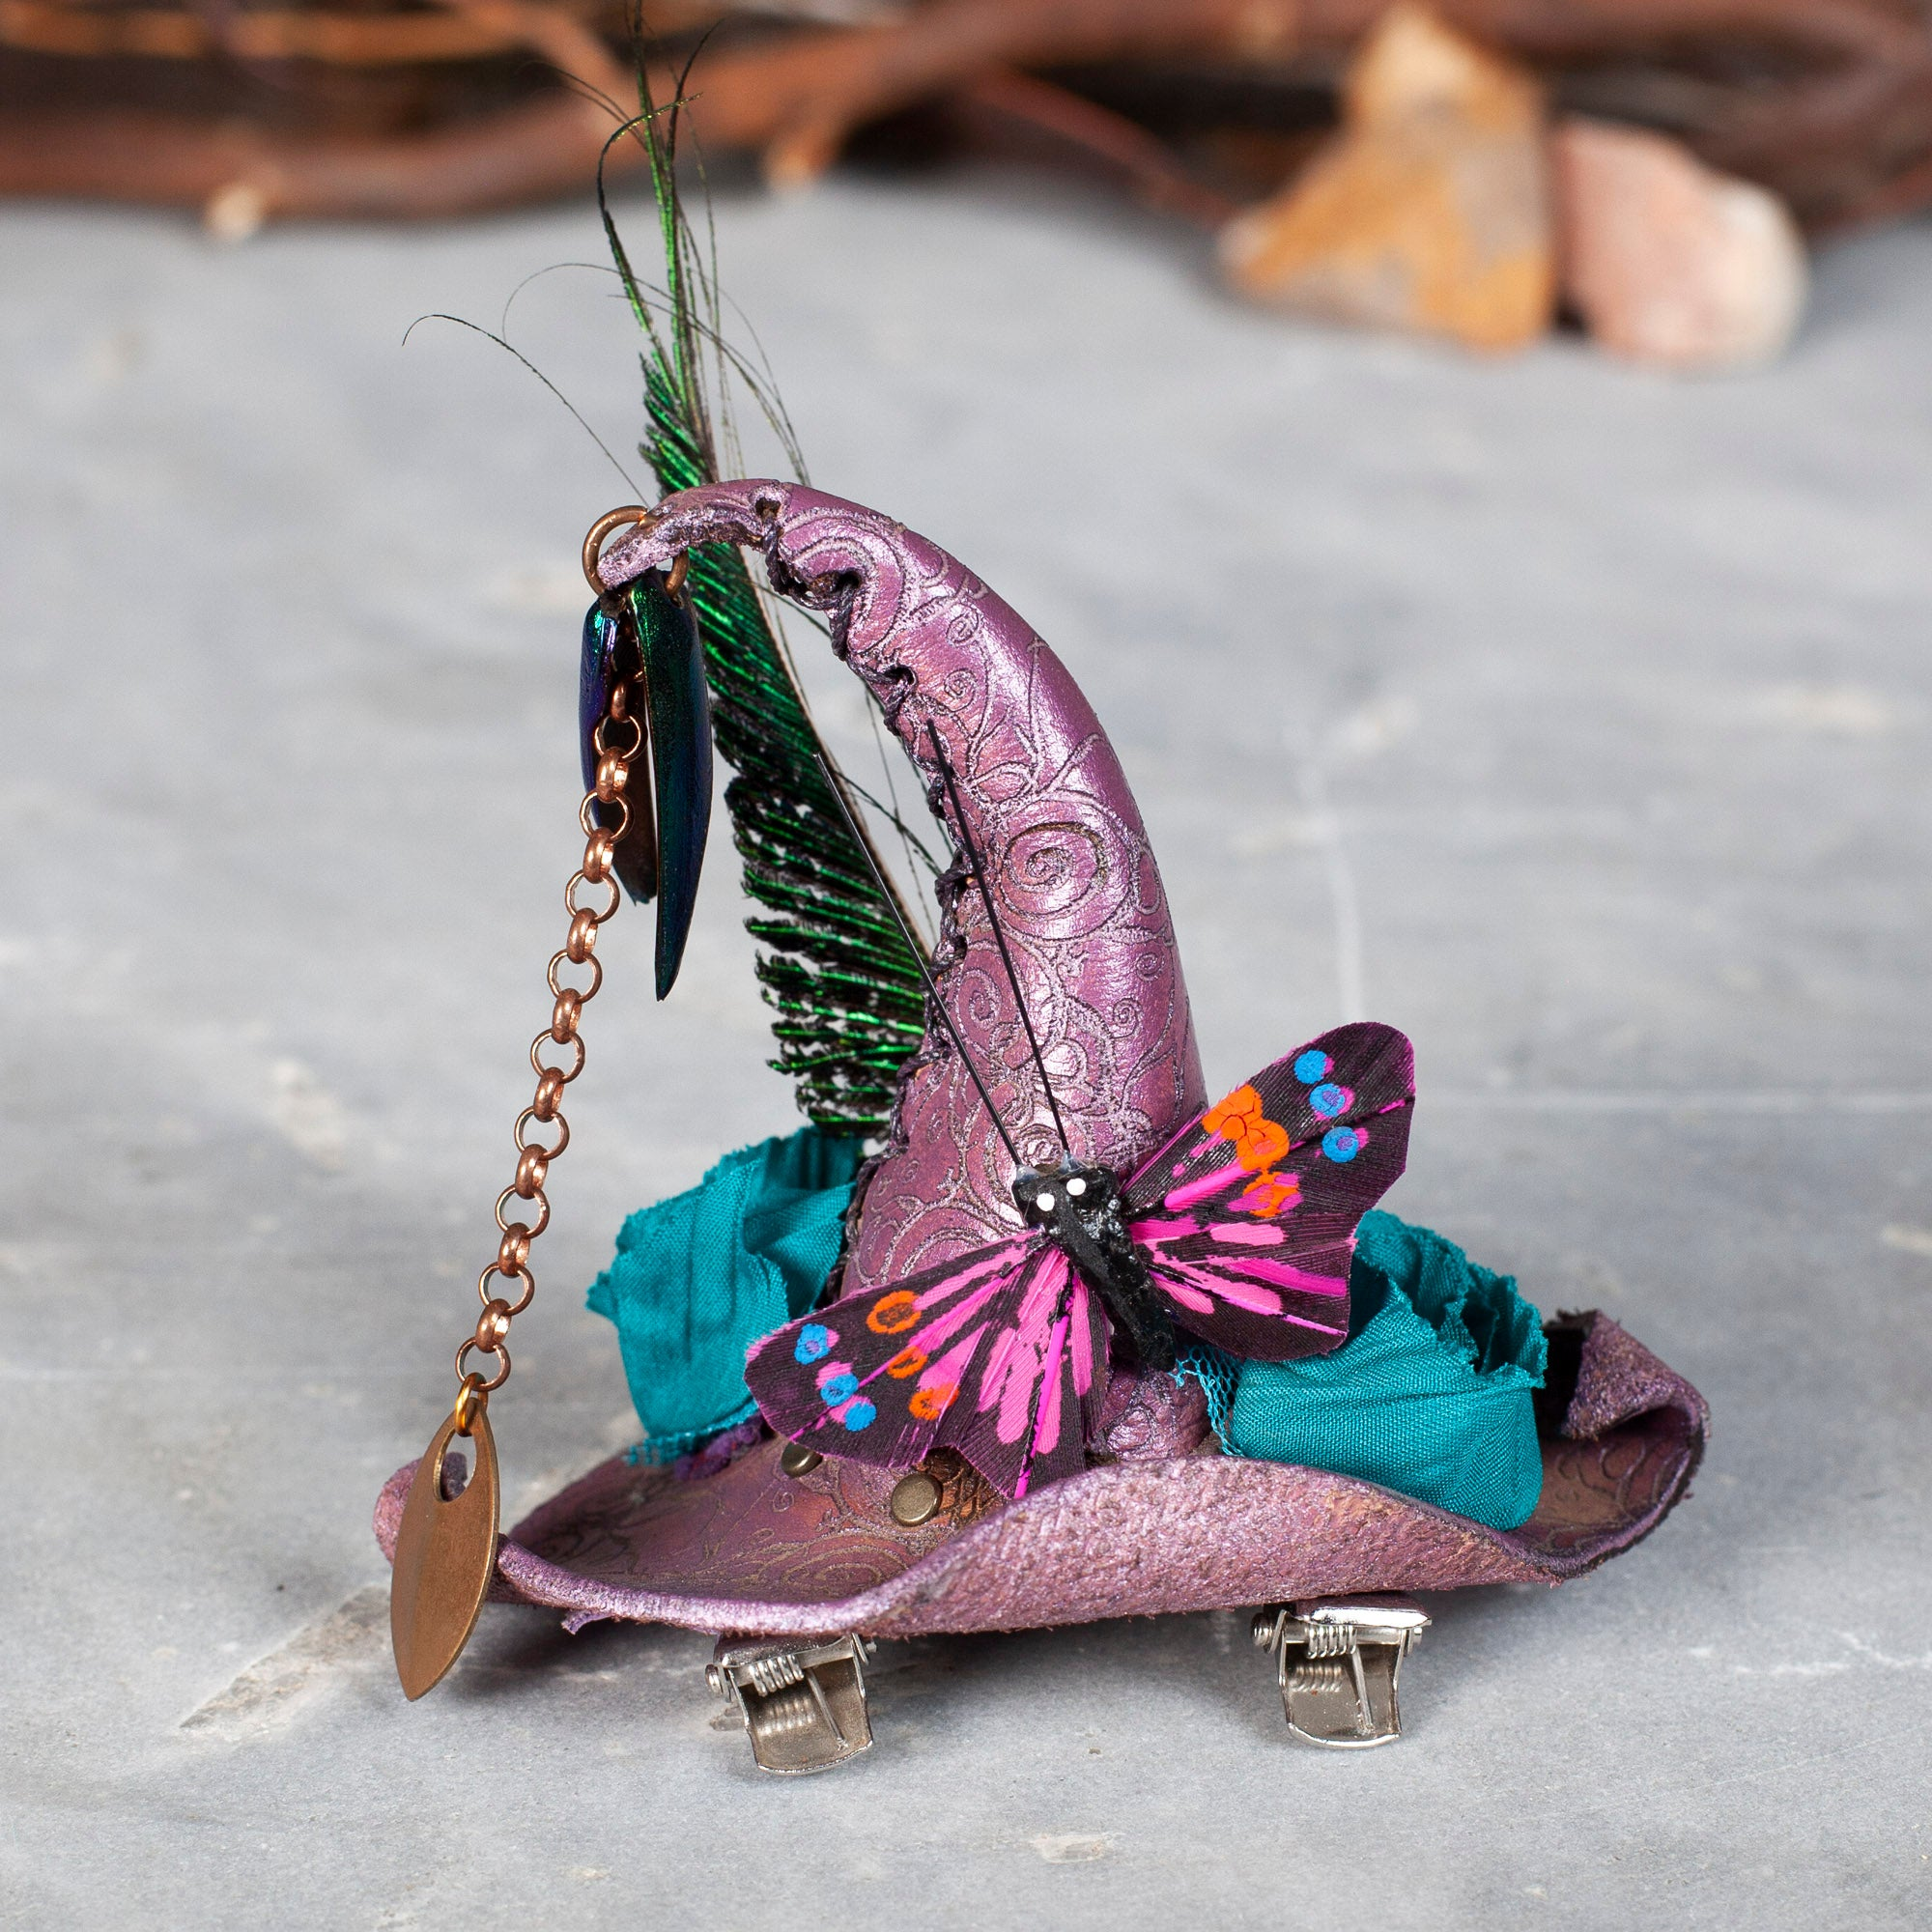 Teeny Tiny Witch Hat | Fascinator | Barrette | Lace | Beetle Wings | IN STOCK